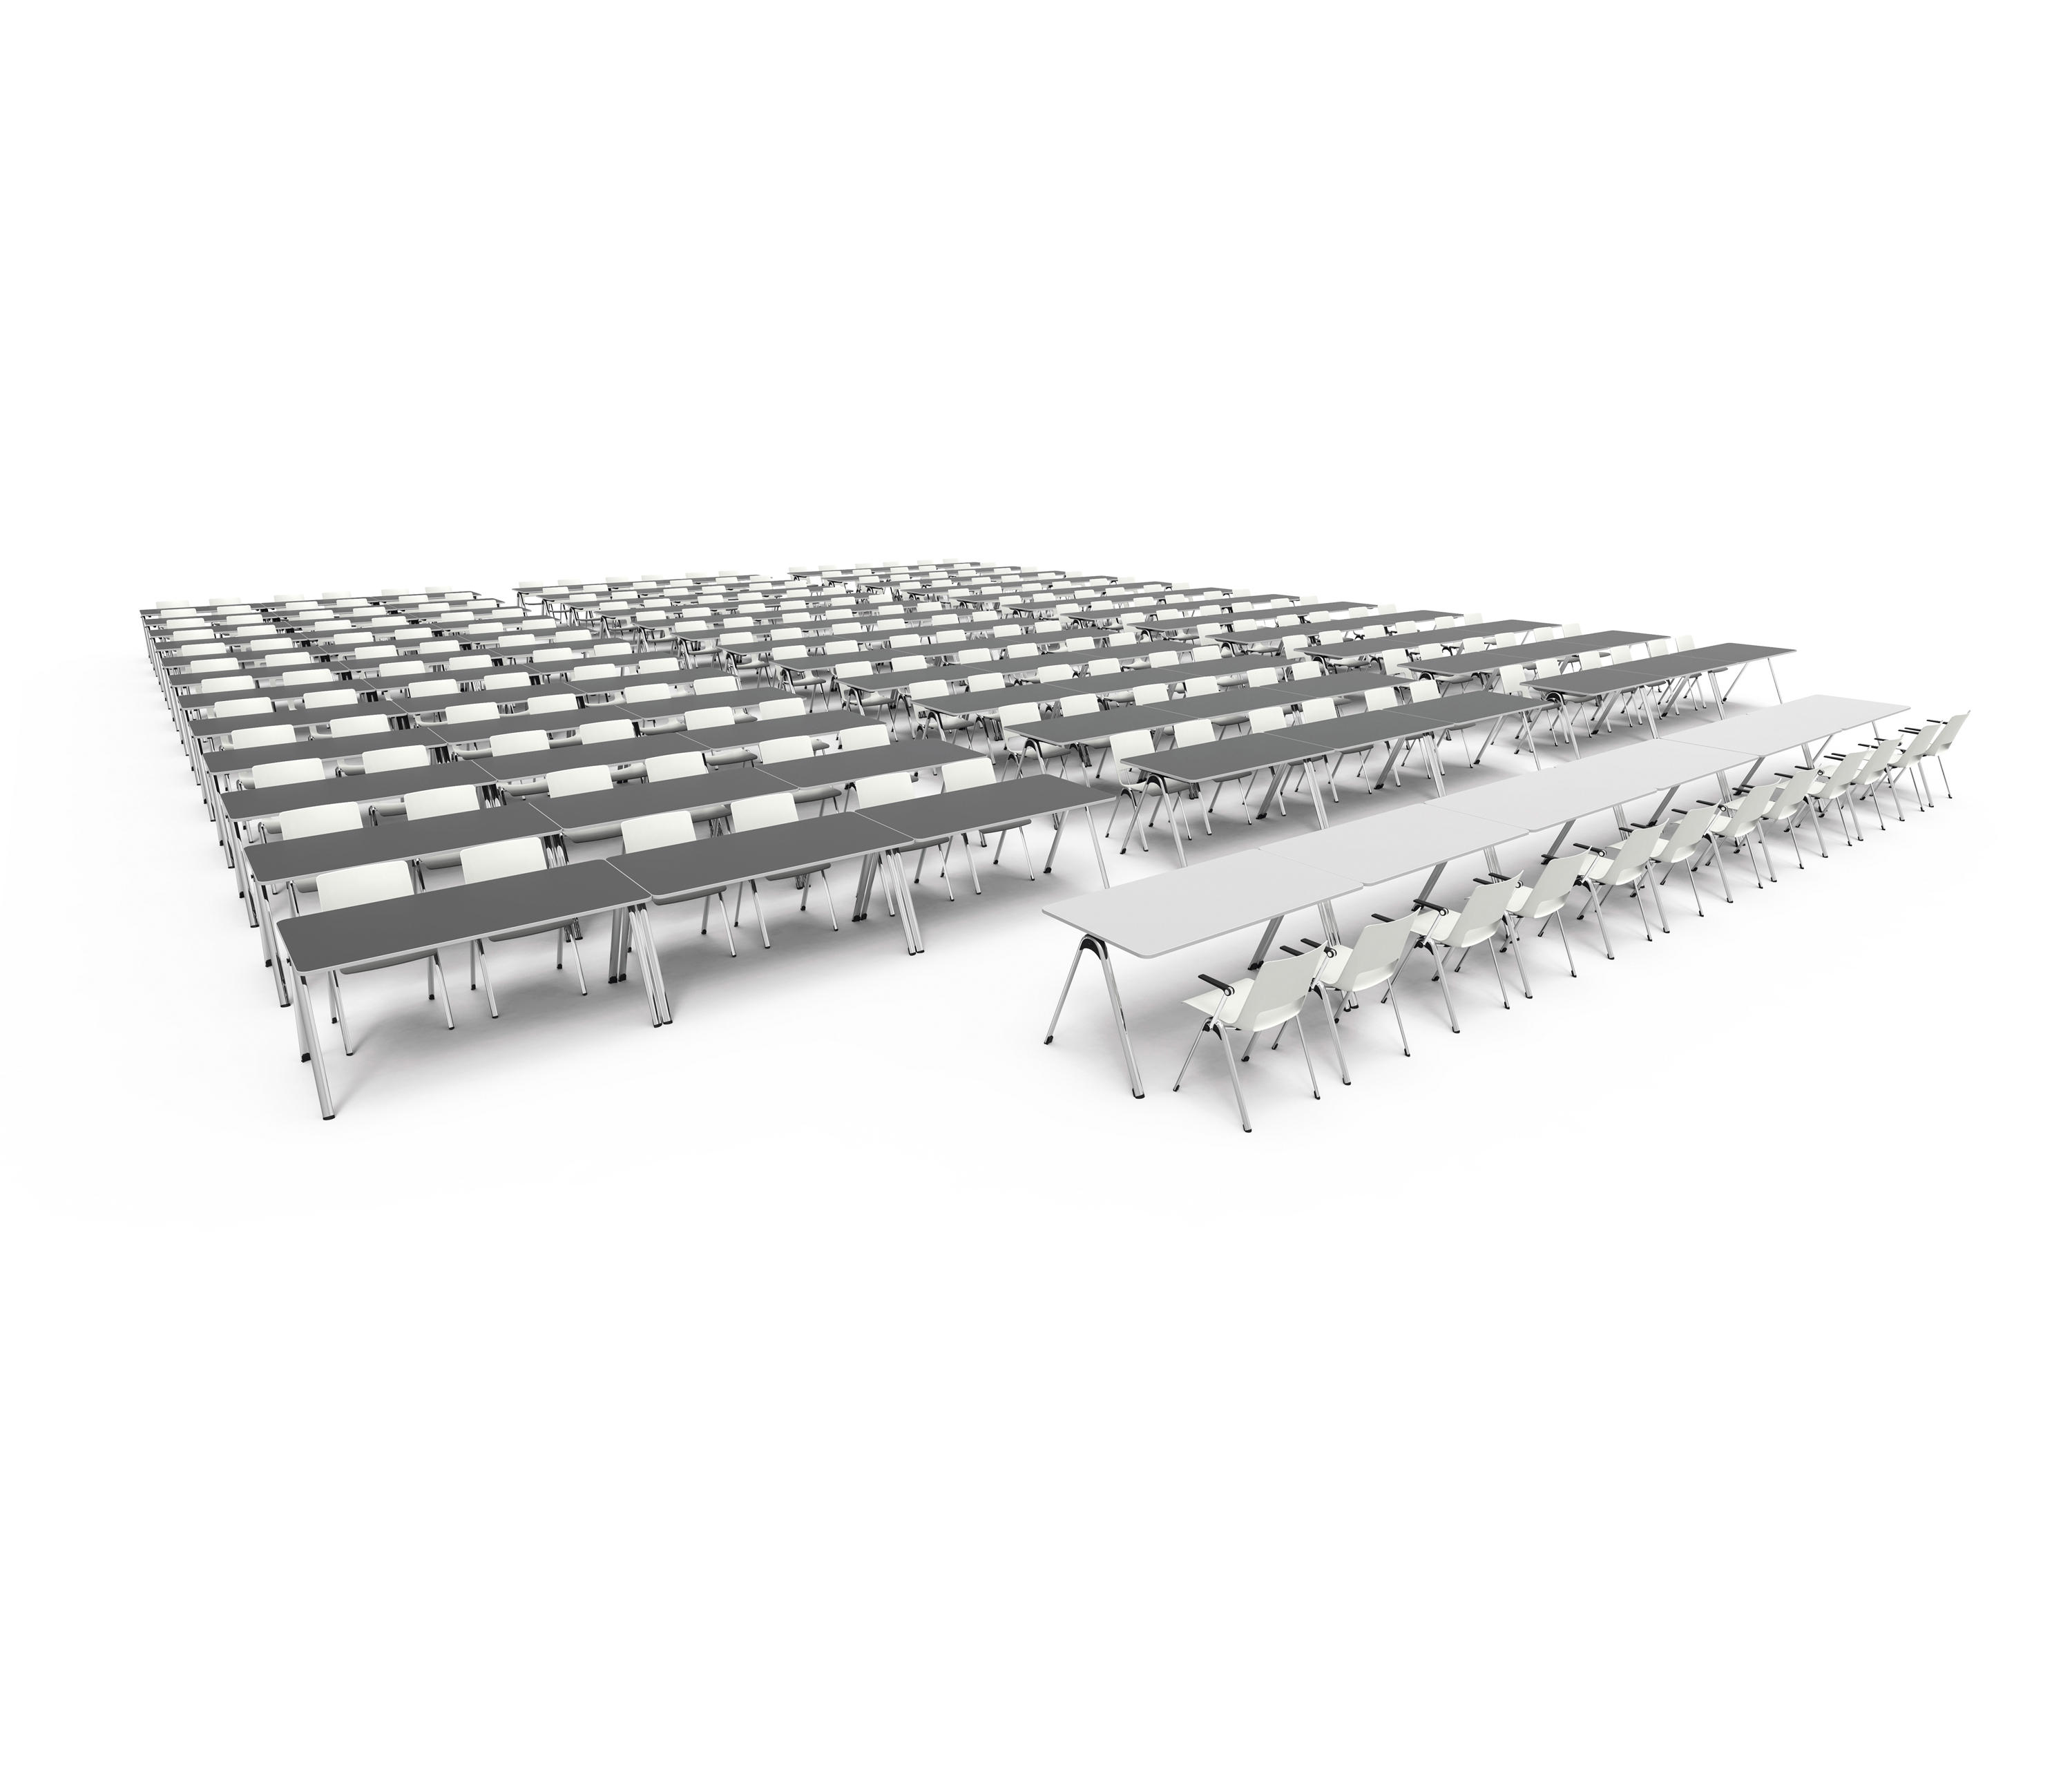 VLEGSIS3 V100H - Visitors chairs / Side chairs from Interstuhl ...